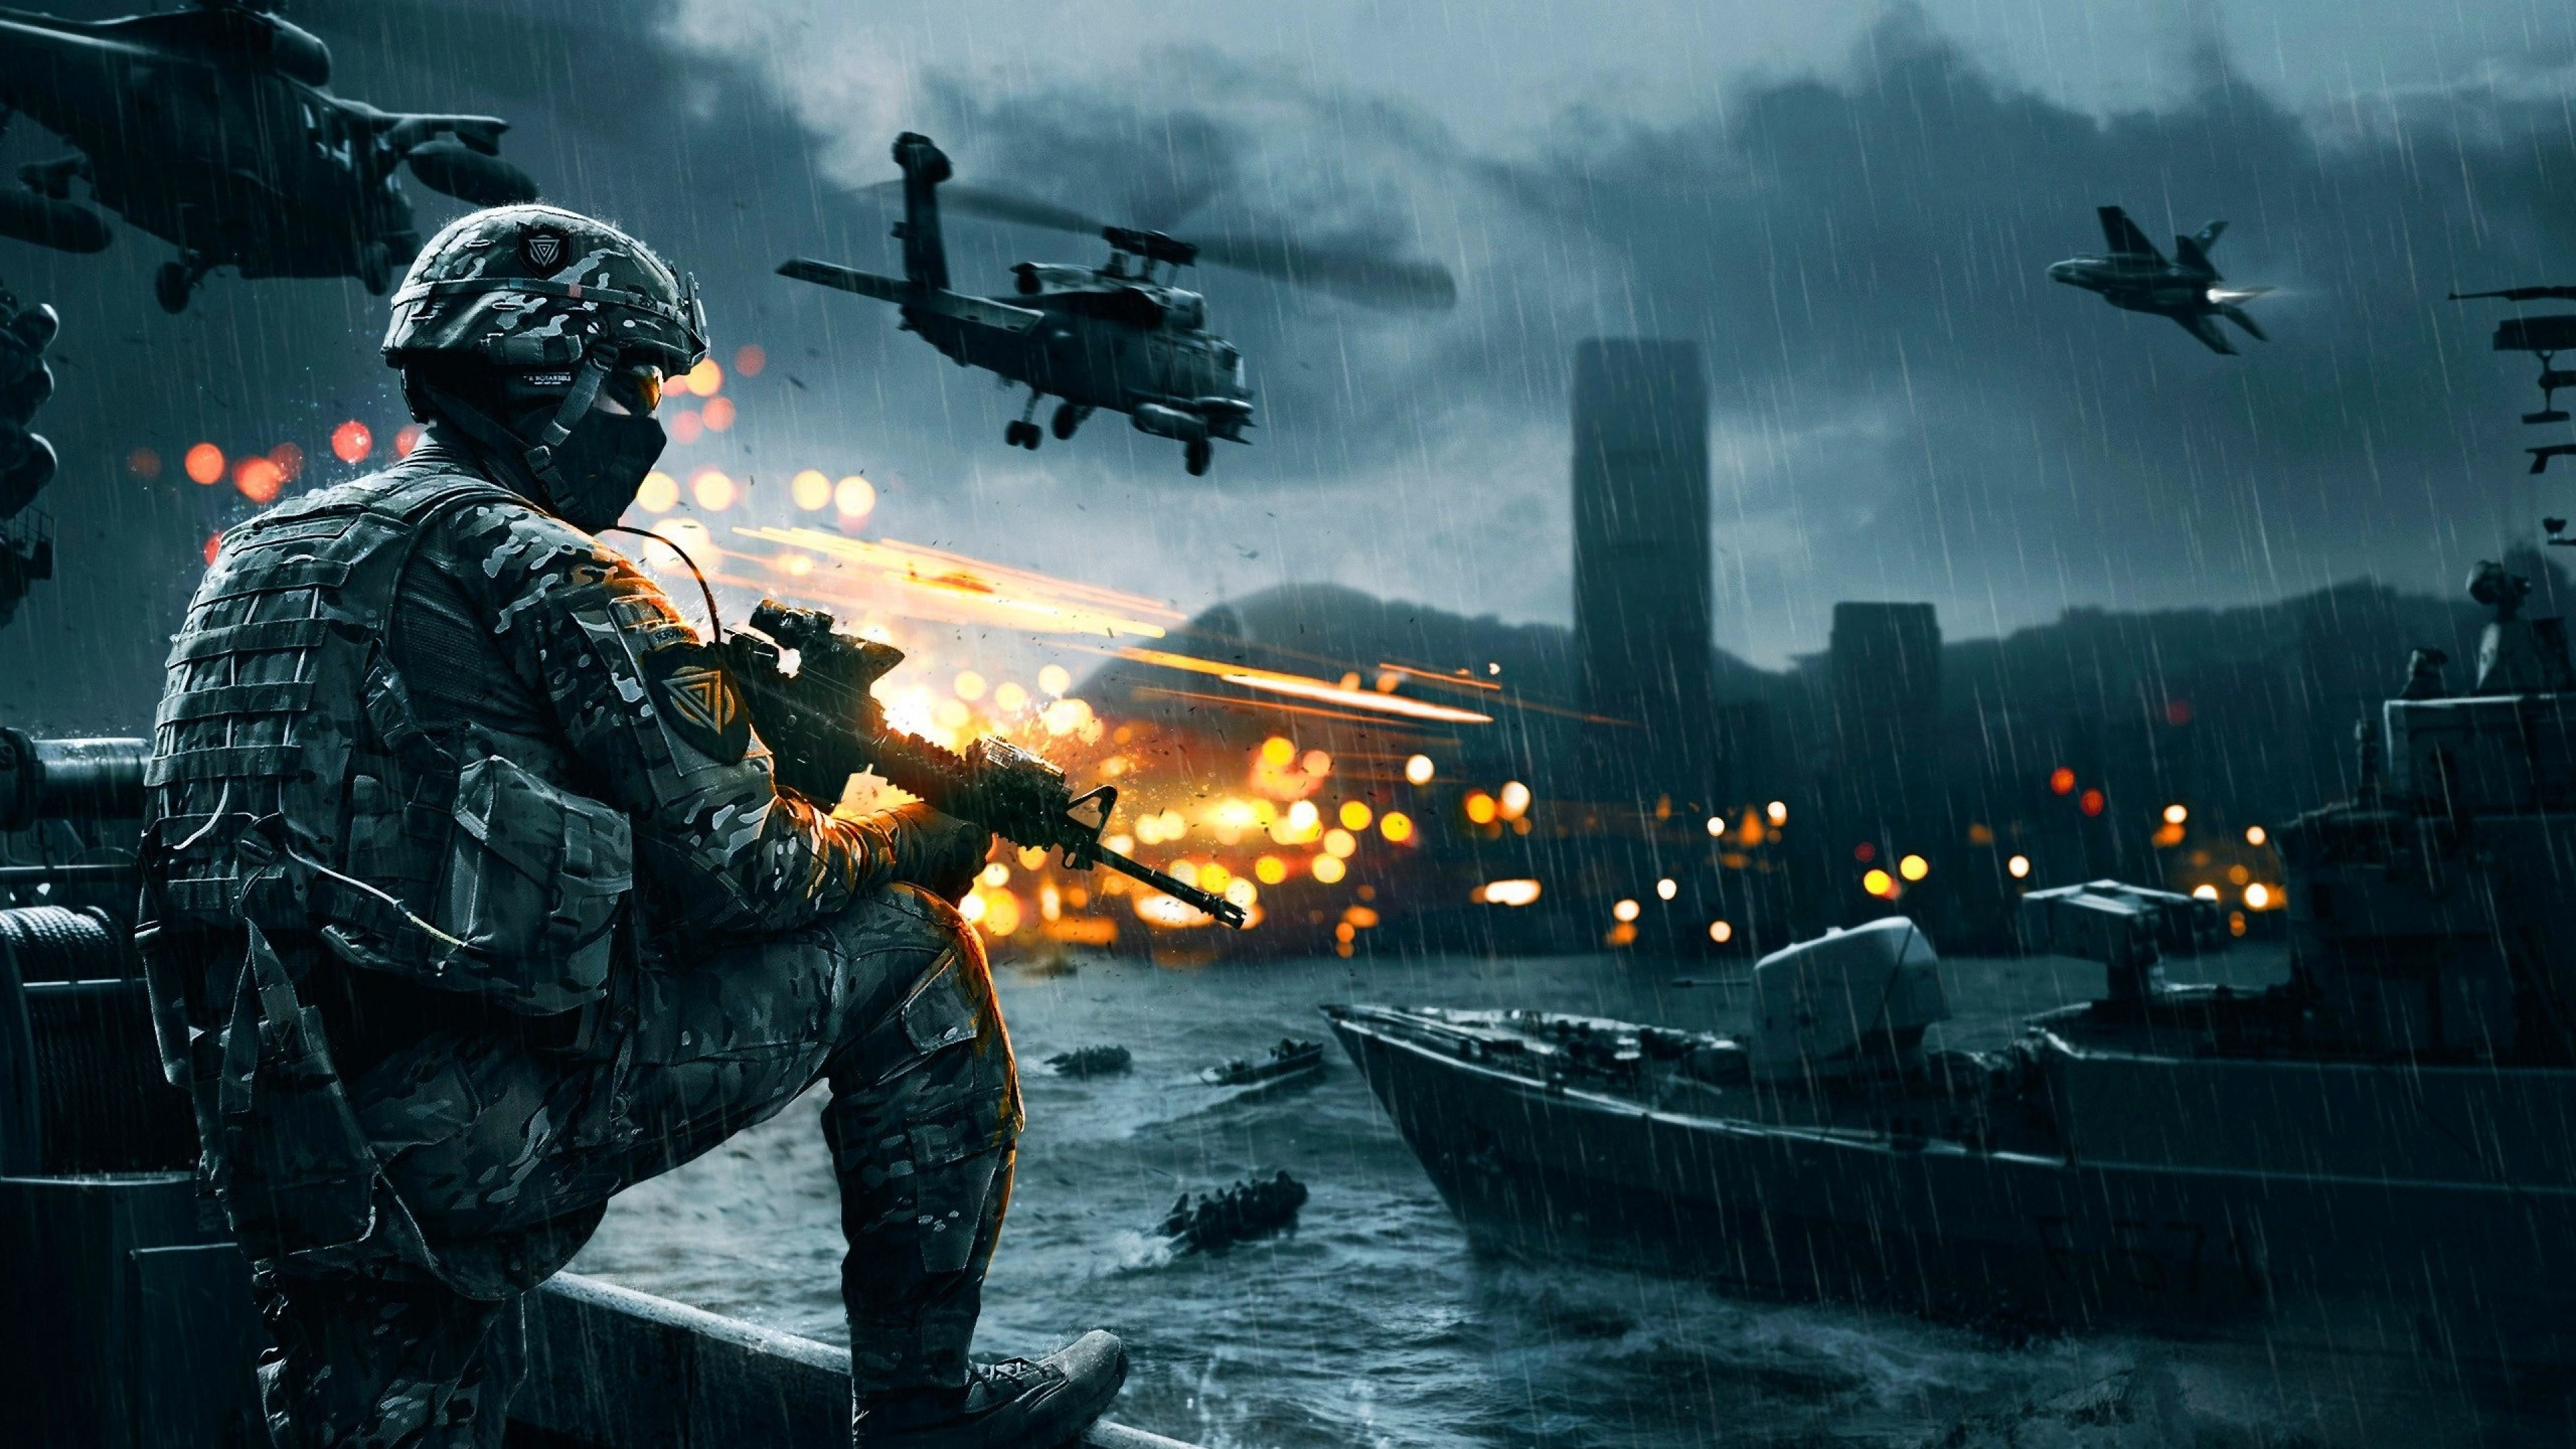 Battlefield 4 Games Wallpaper Hd: Battlefield 4, HD Games, 4k Wallpapers, Images